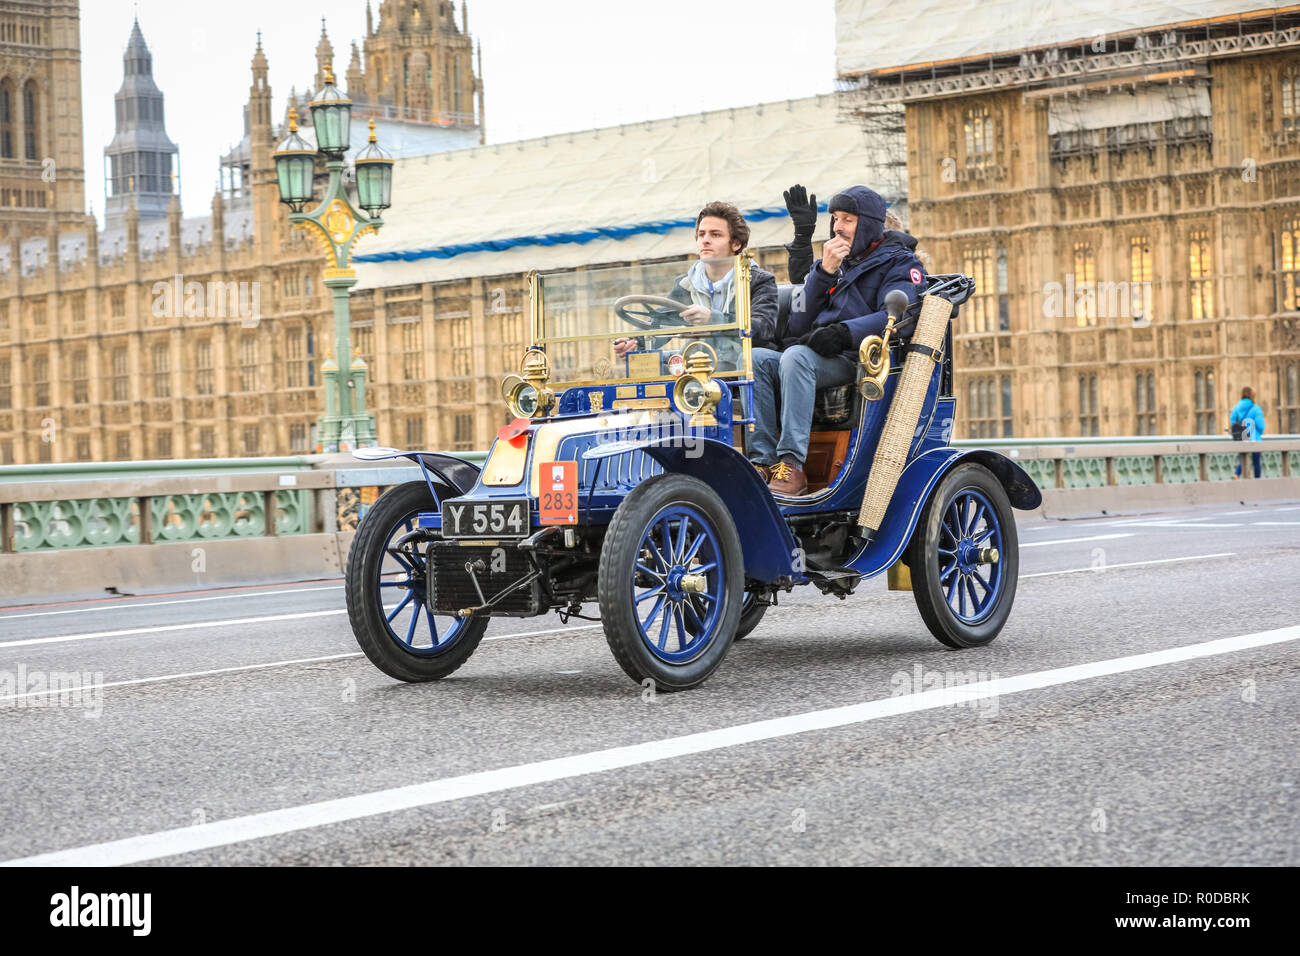 Westminster Bridge, London, UK, 4th Nov 2018. The World's longest running motoring event, Bonhams London to Brighton Veteran Car Run, sets of from Hyde Park and along Constitution Hill by Buckingham Palace, the Mall and Admiralty Arch, then along a 60 mile route all the way to Brighton. It is this year in its 122nd anniversary run. More than 400 of the veteran cars are from the pre-1905 era. Credit: Imageplotter News and Sports/Alamy Live News - Stock Image